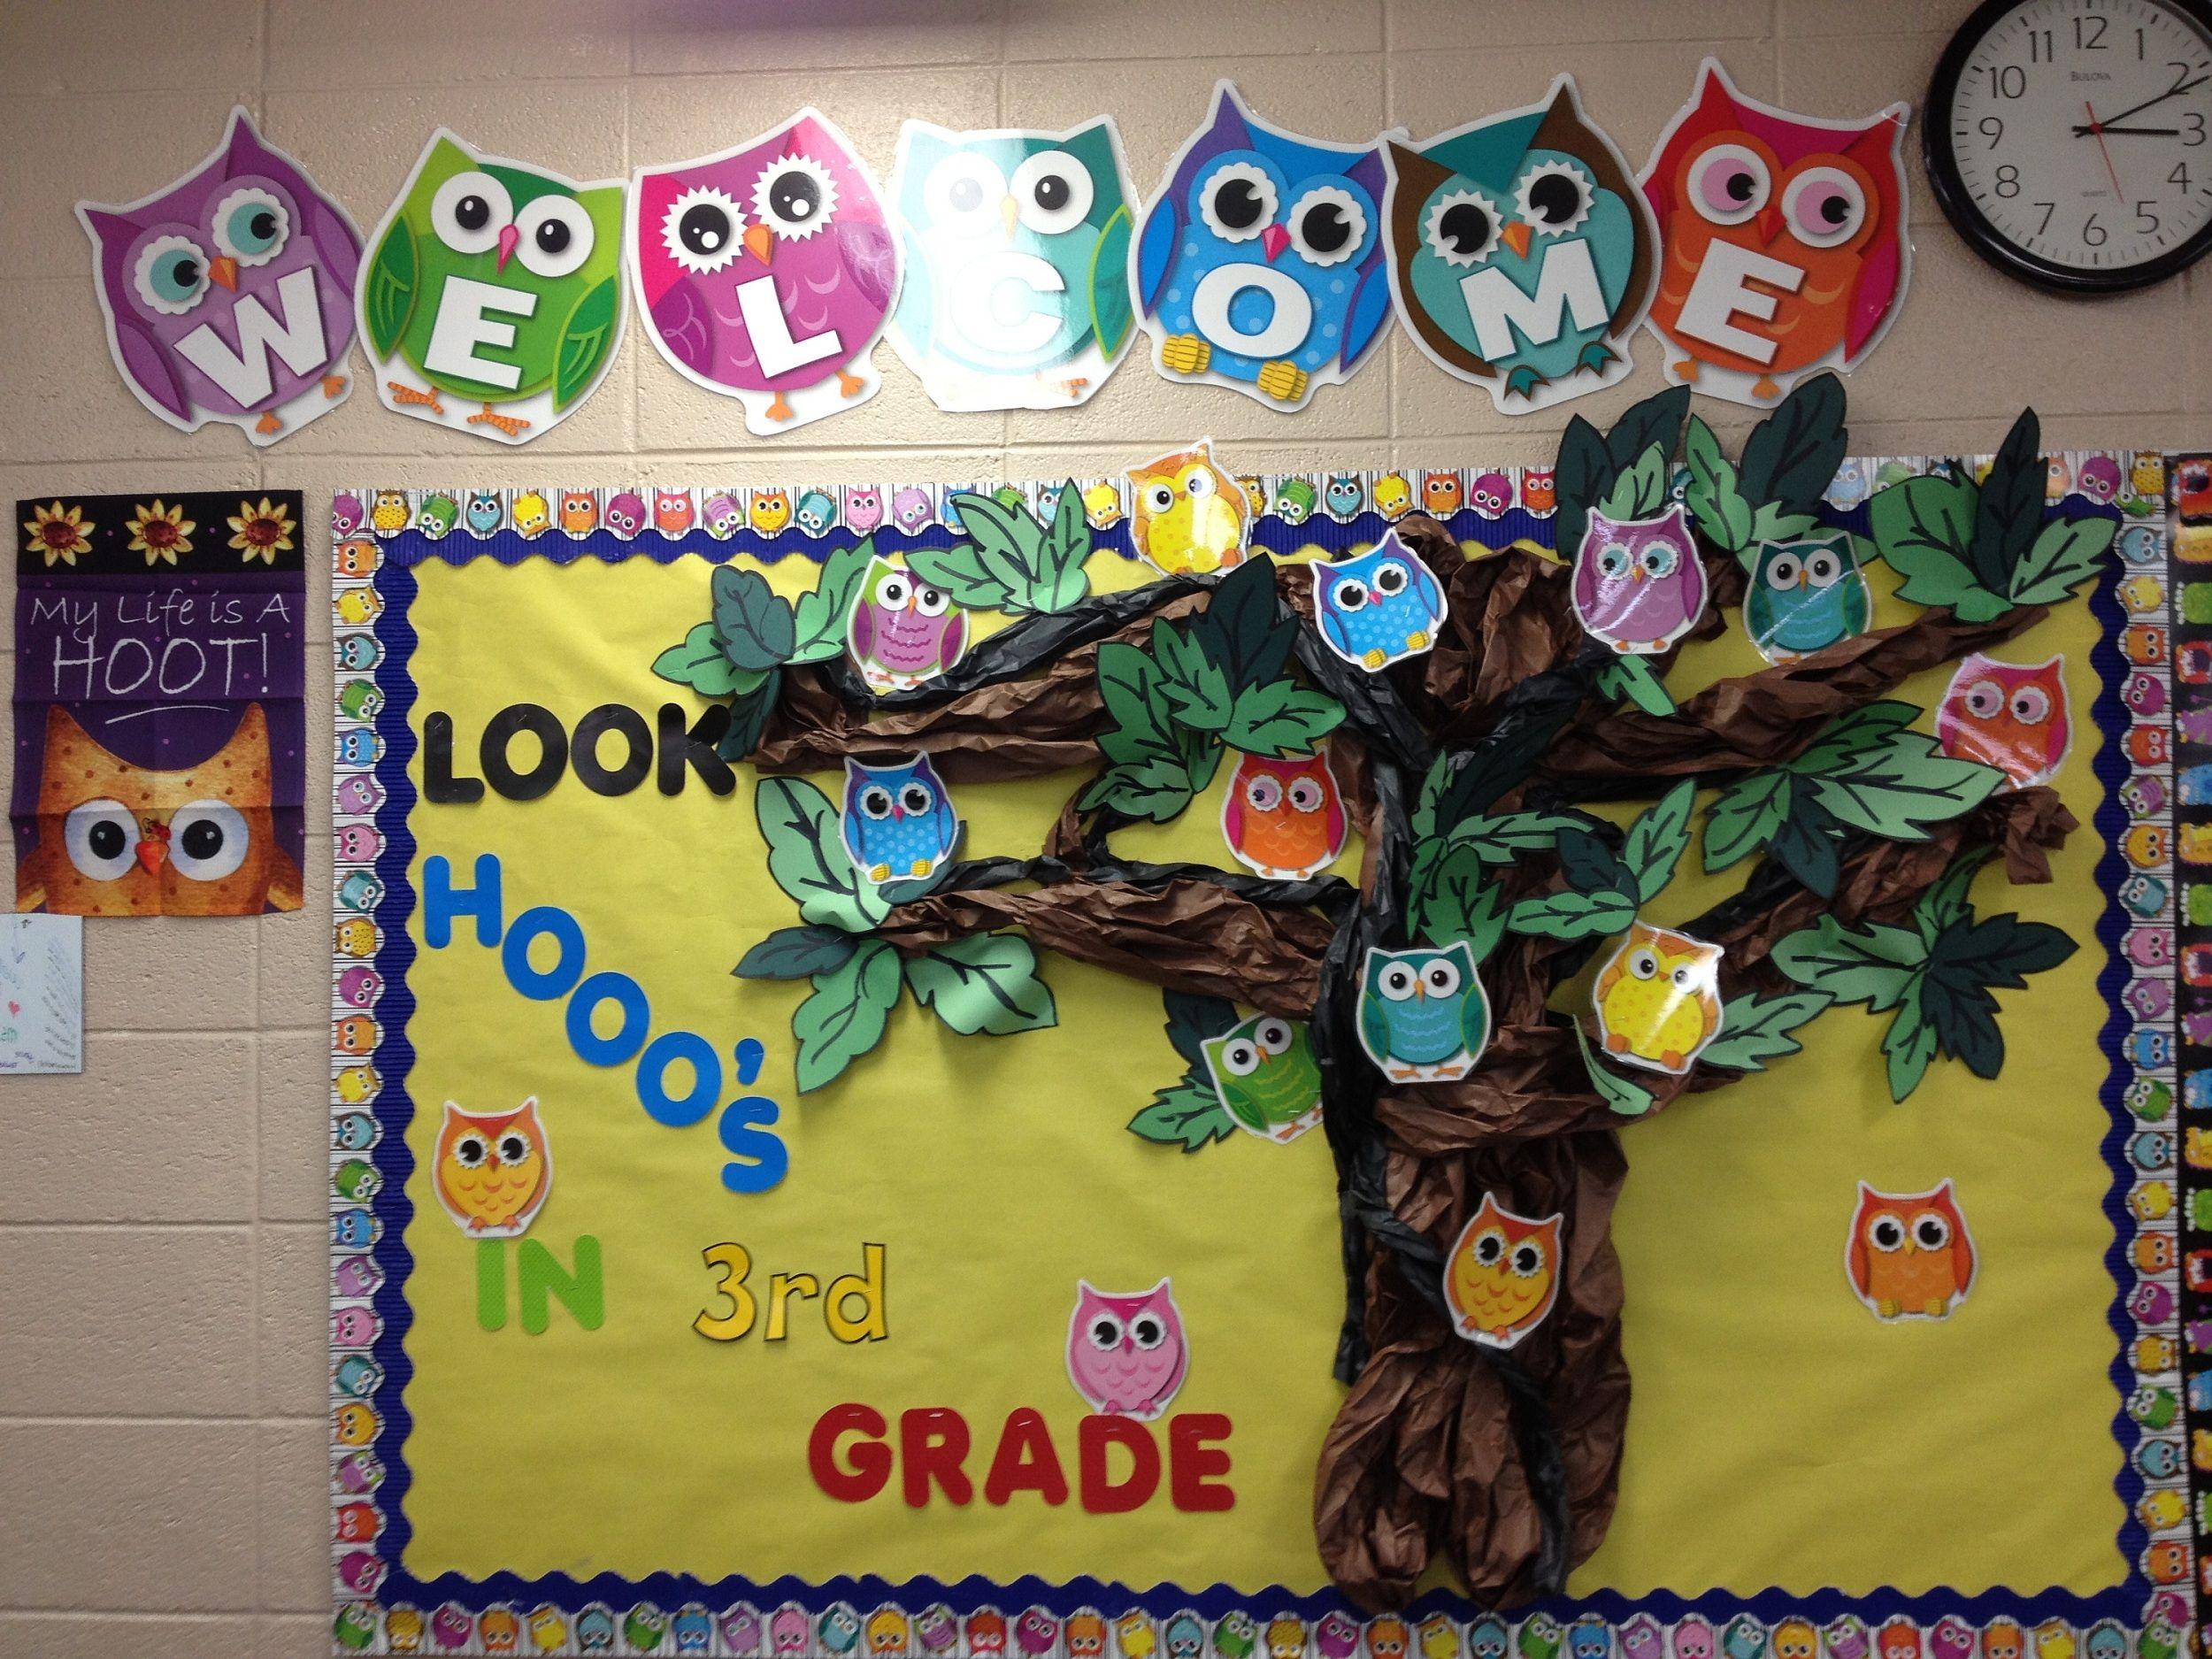 Classroom Bulletin Design : Back to school bulletin board ideas look hooo s in rd